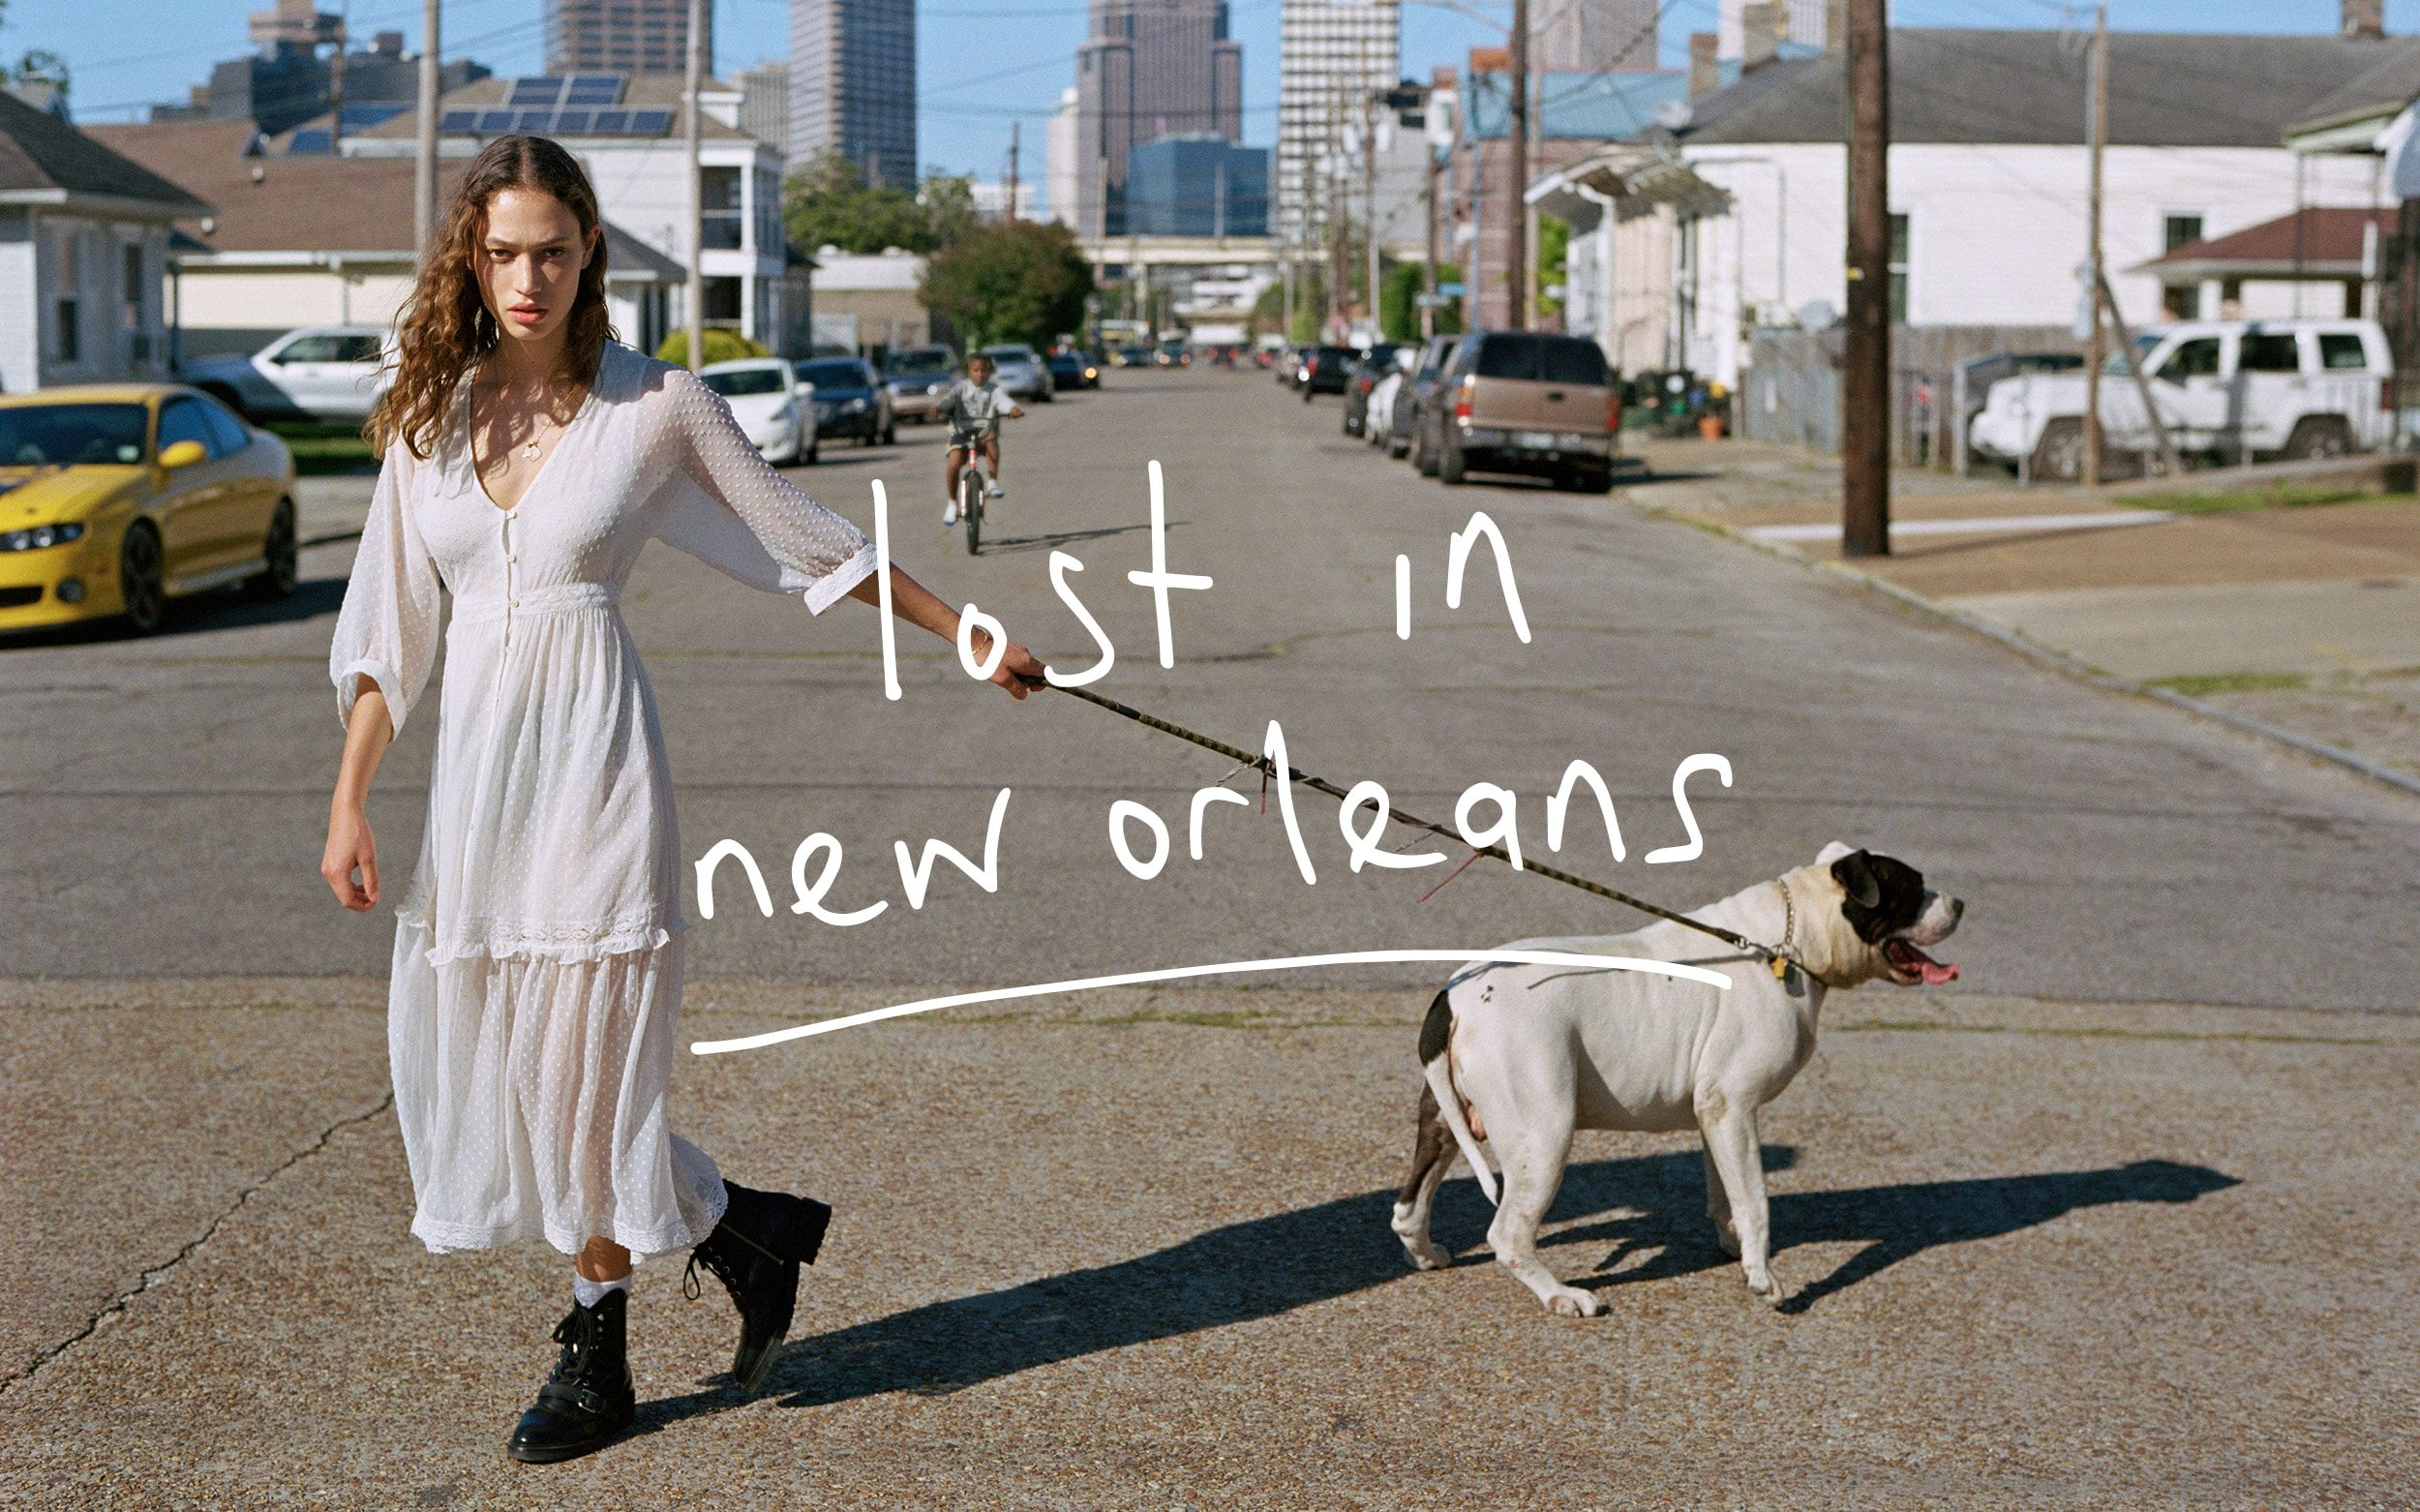 Landscape photograph shot in the streets of New Orleans featuring a woman walking a dog, wearing a long white dress from our latest summer collection.